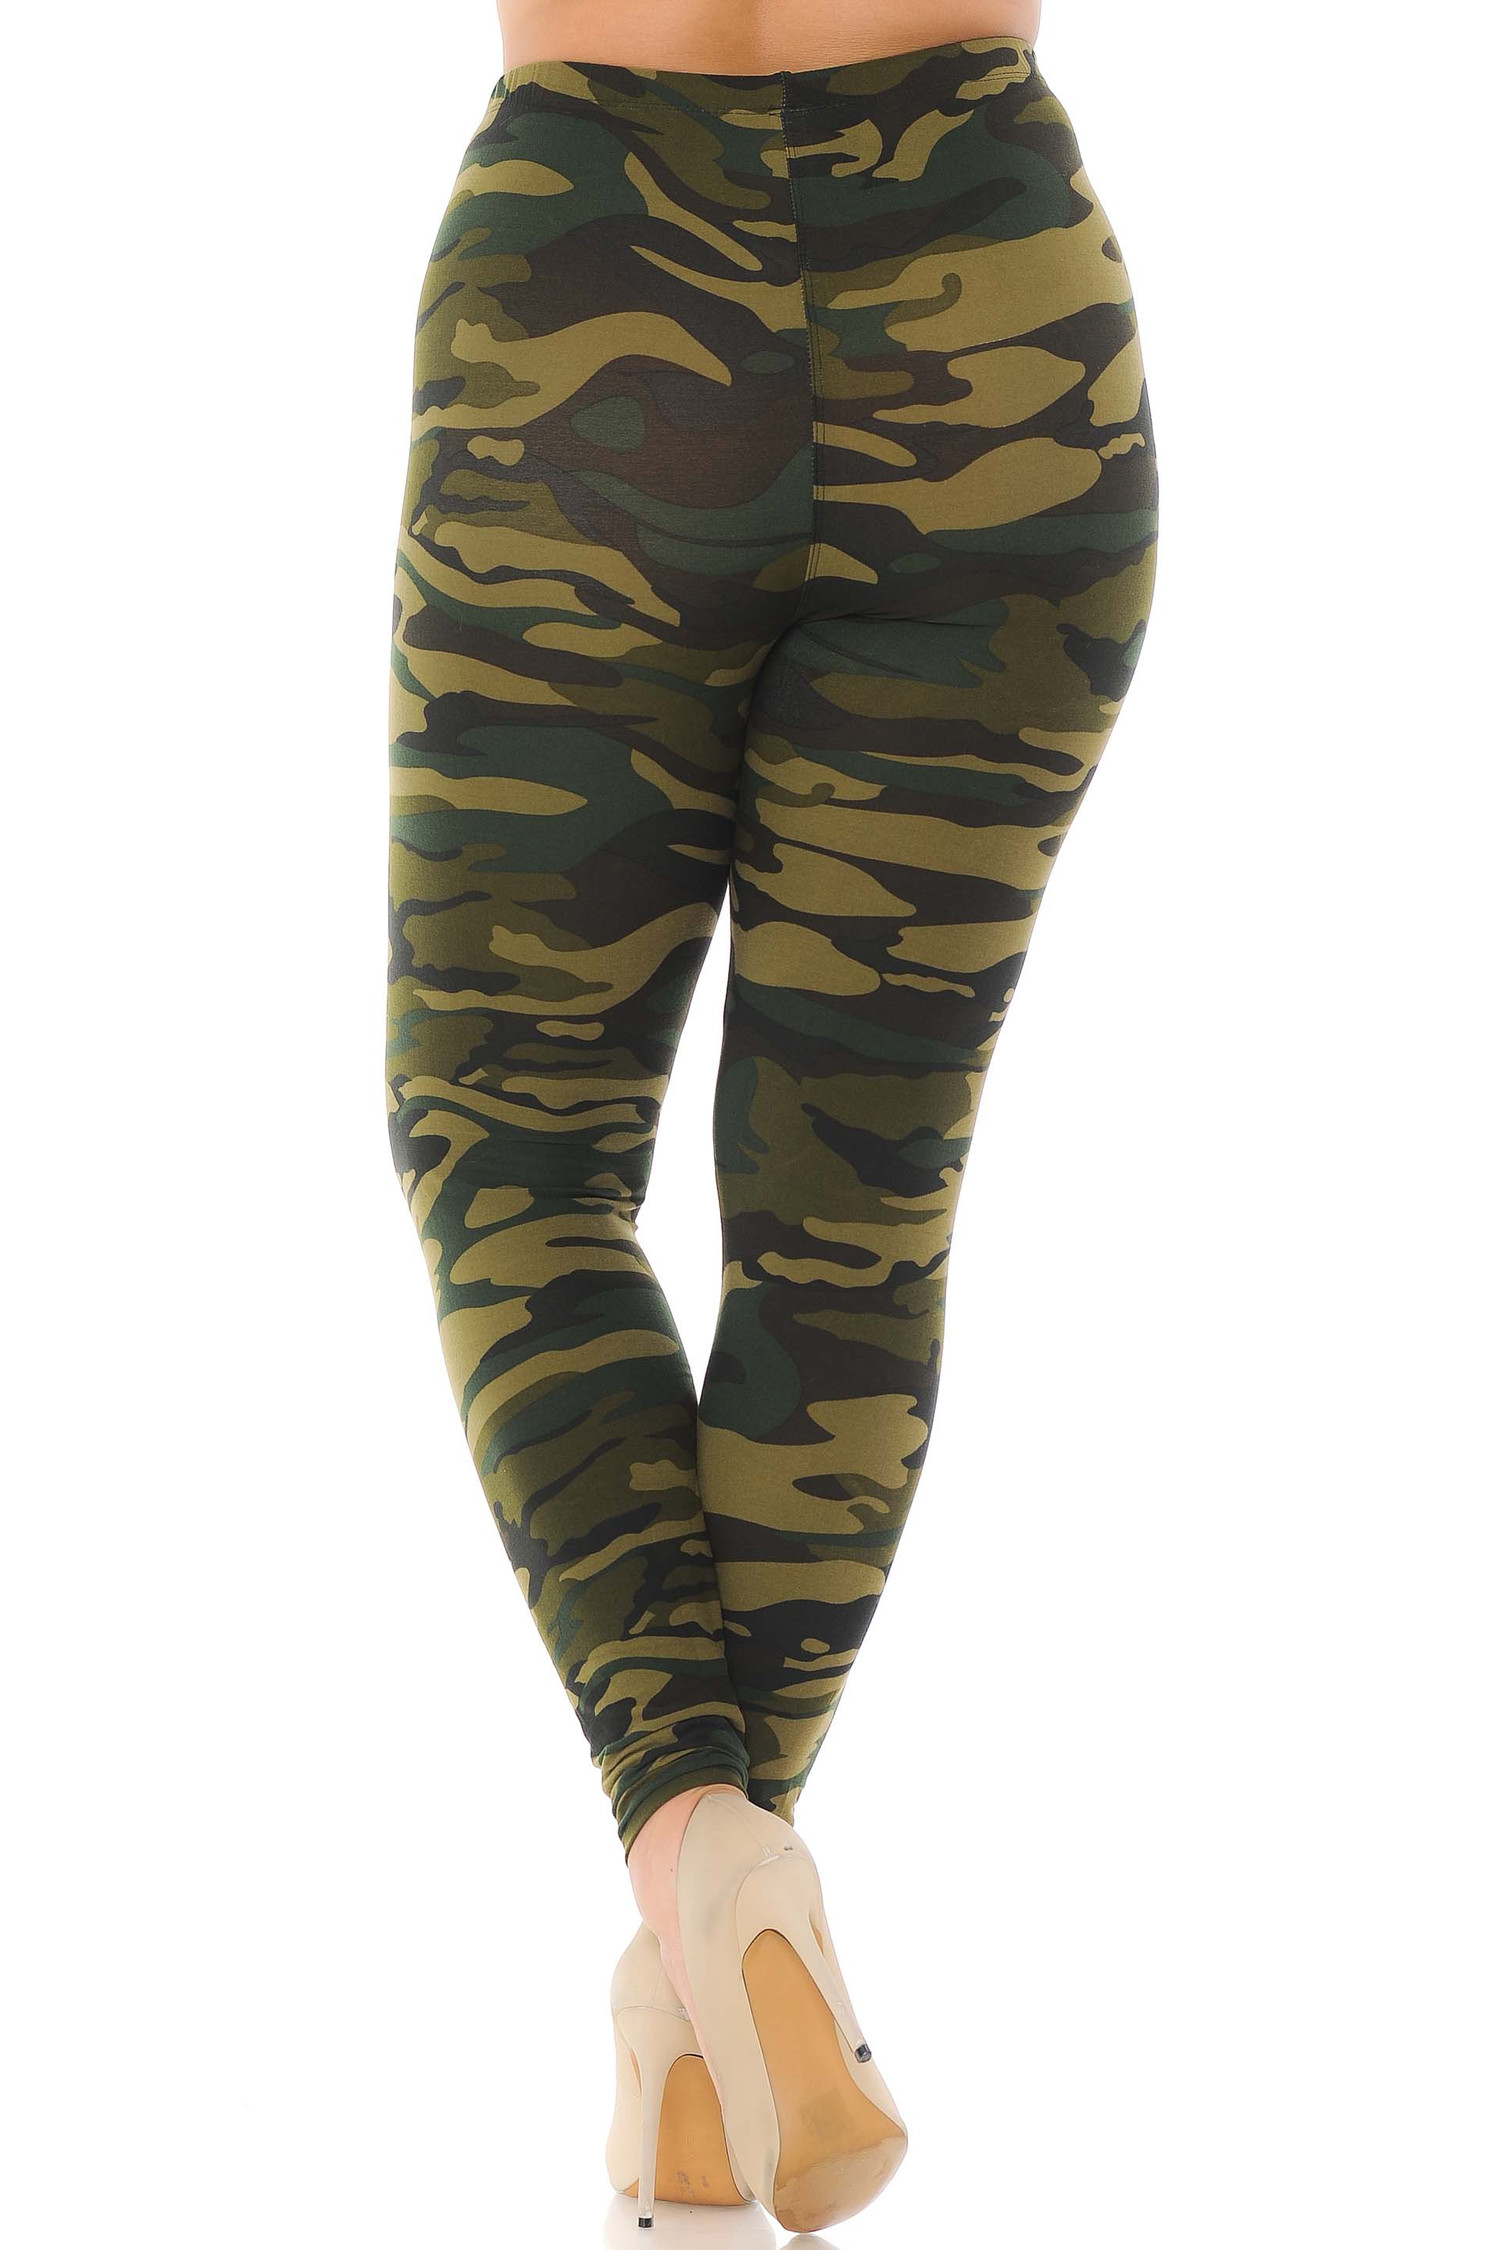 Brushed  Green Camouflage Plus Size Leggings